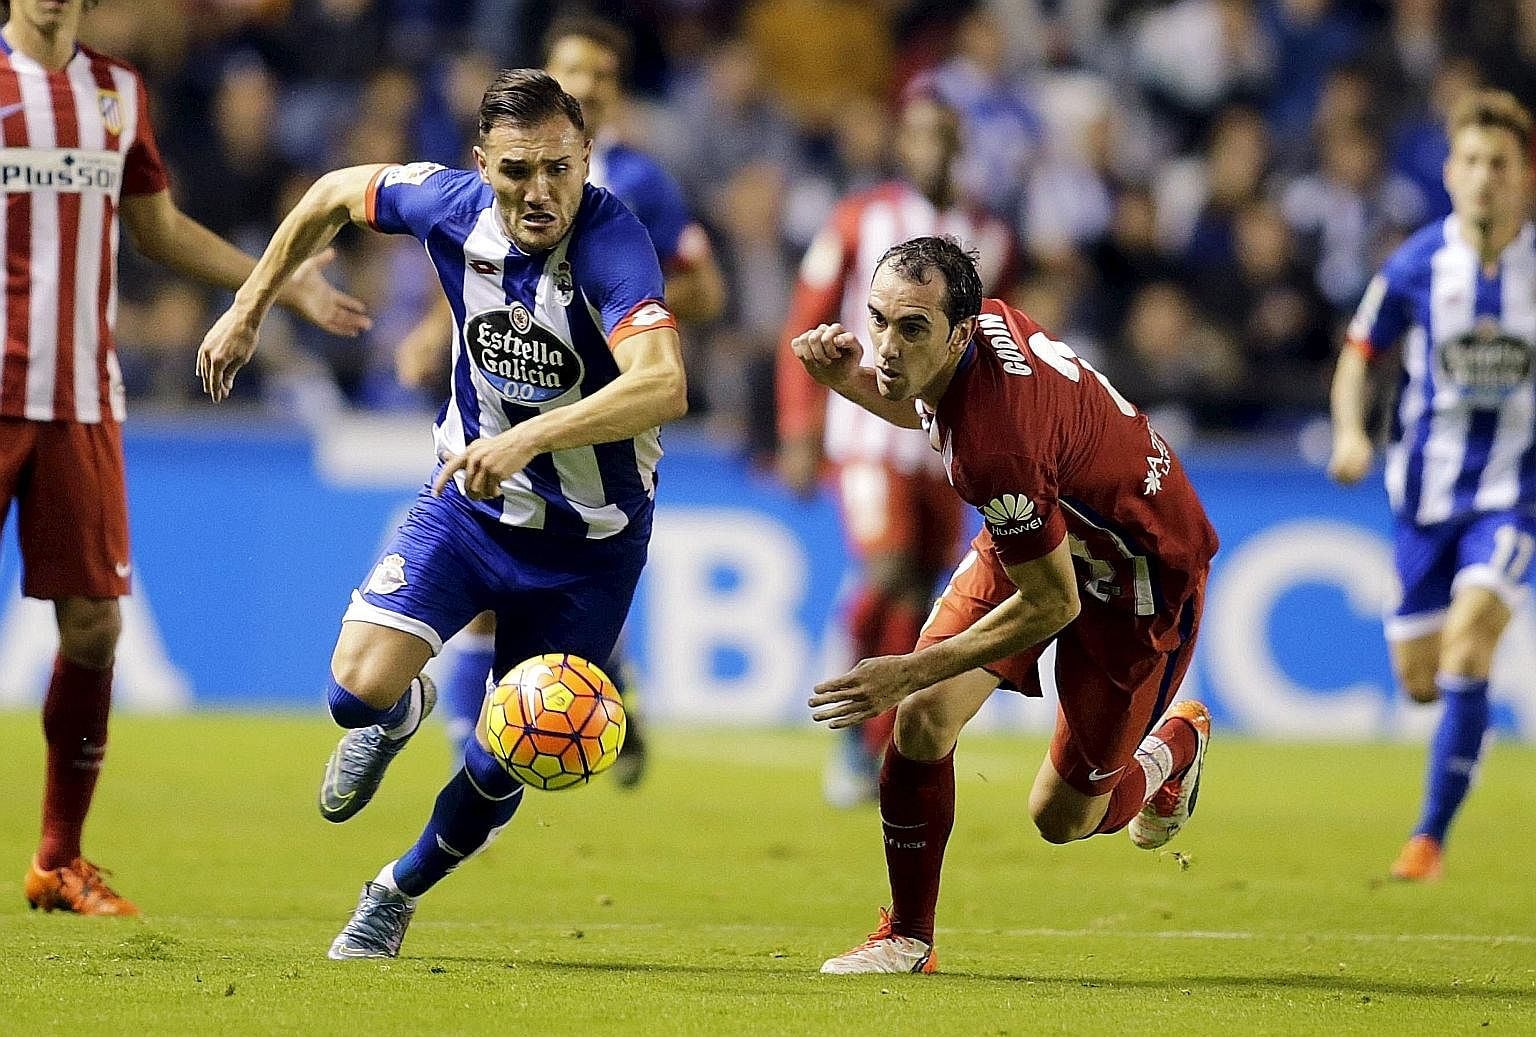 Deportivo Coruna's Lucas Perez (left) fighting for possession against Atletico Madrid's Diego Godin last year. EPL clubs do not always attract the very best Spanish players.